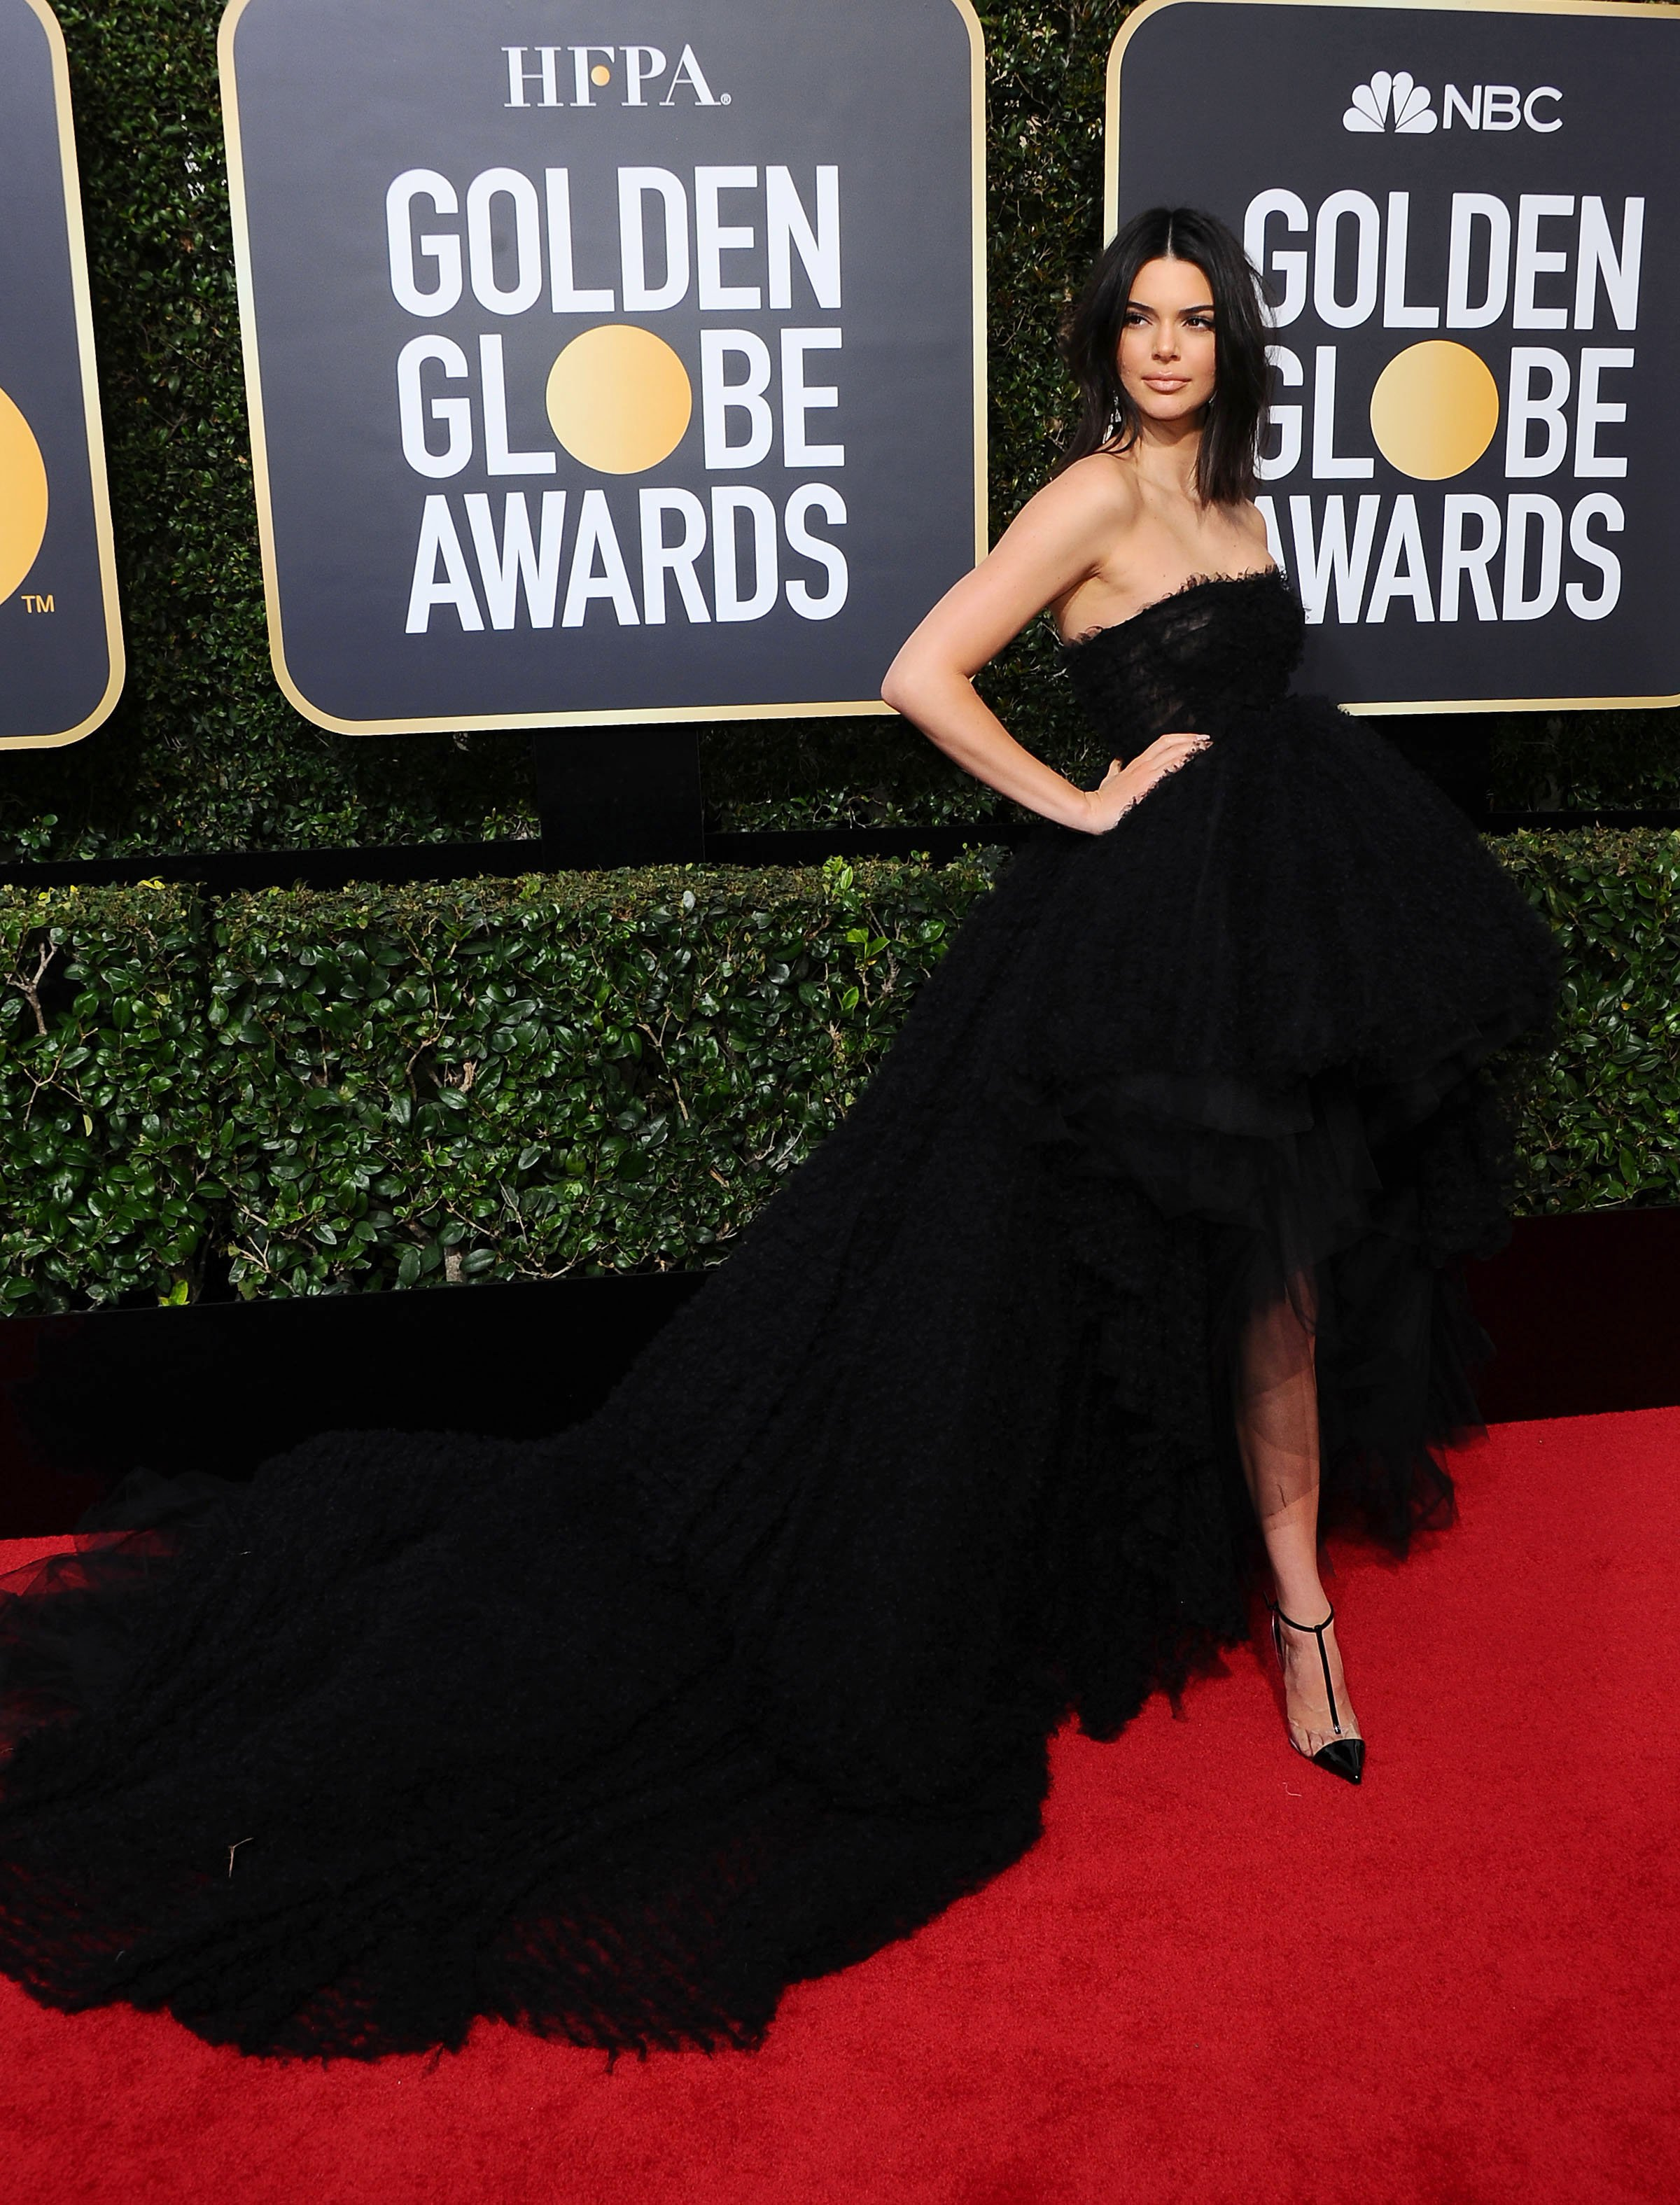 , Beverly Hills, CA -20180107 - The 75th Golden Globe Awards - Arrivals at The Beverly Hilton  -PICTURED: Kendall Jenner -, Image: 359494045, License: Rights-managed, Restrictions: , Model Release: no, Credit line: Profimedia, INSTAR Images